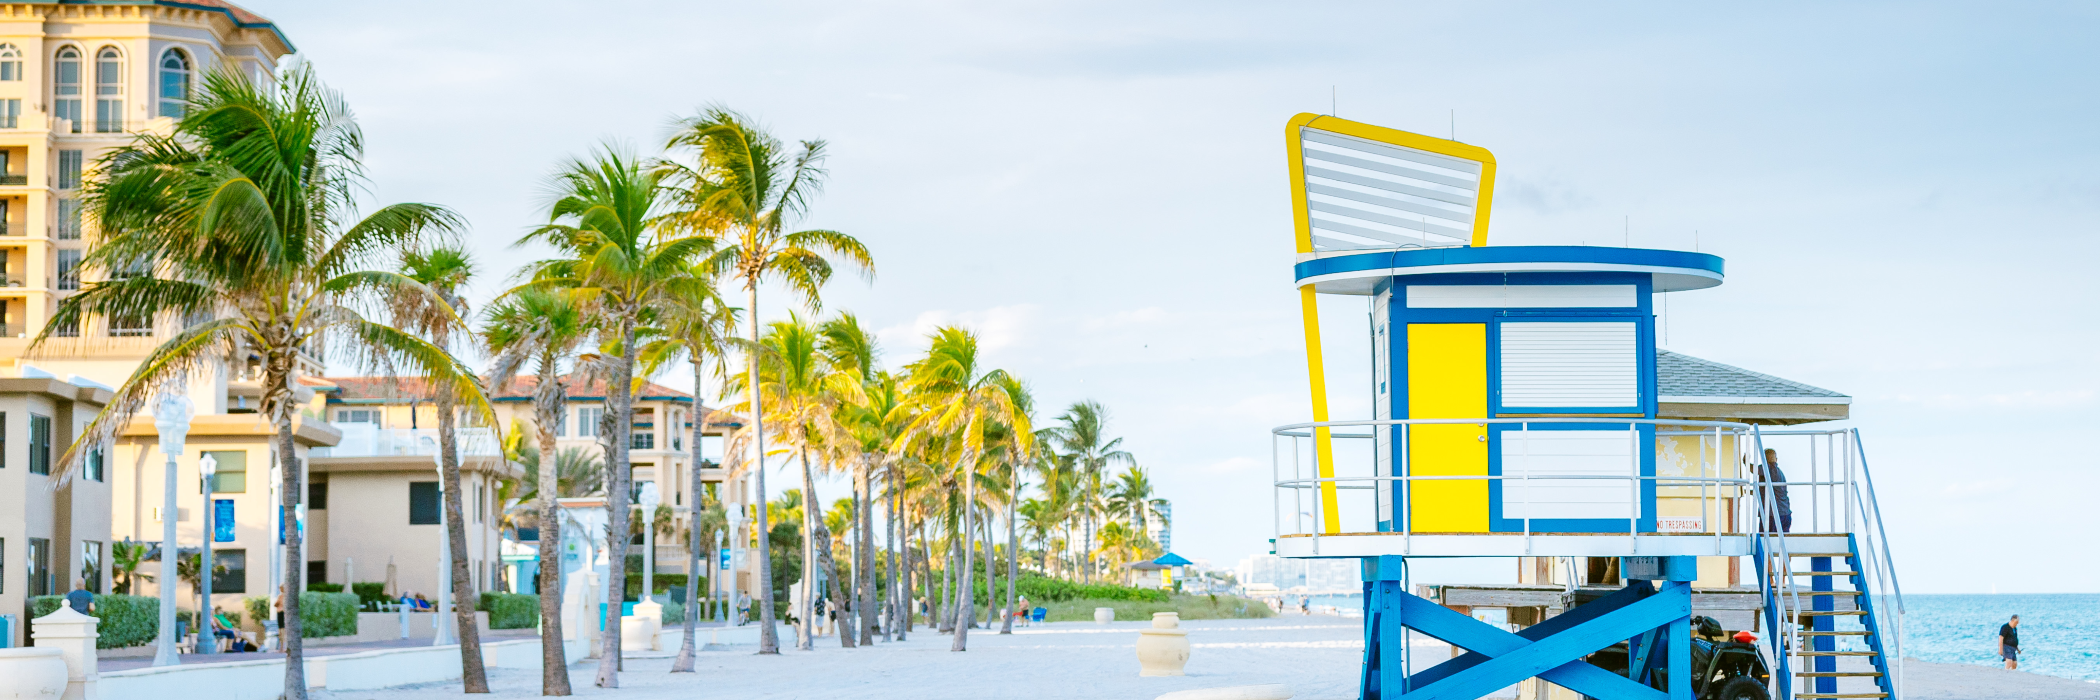 A brightly-colored lifeguard stand watches over the white sands of Hollywood Florida